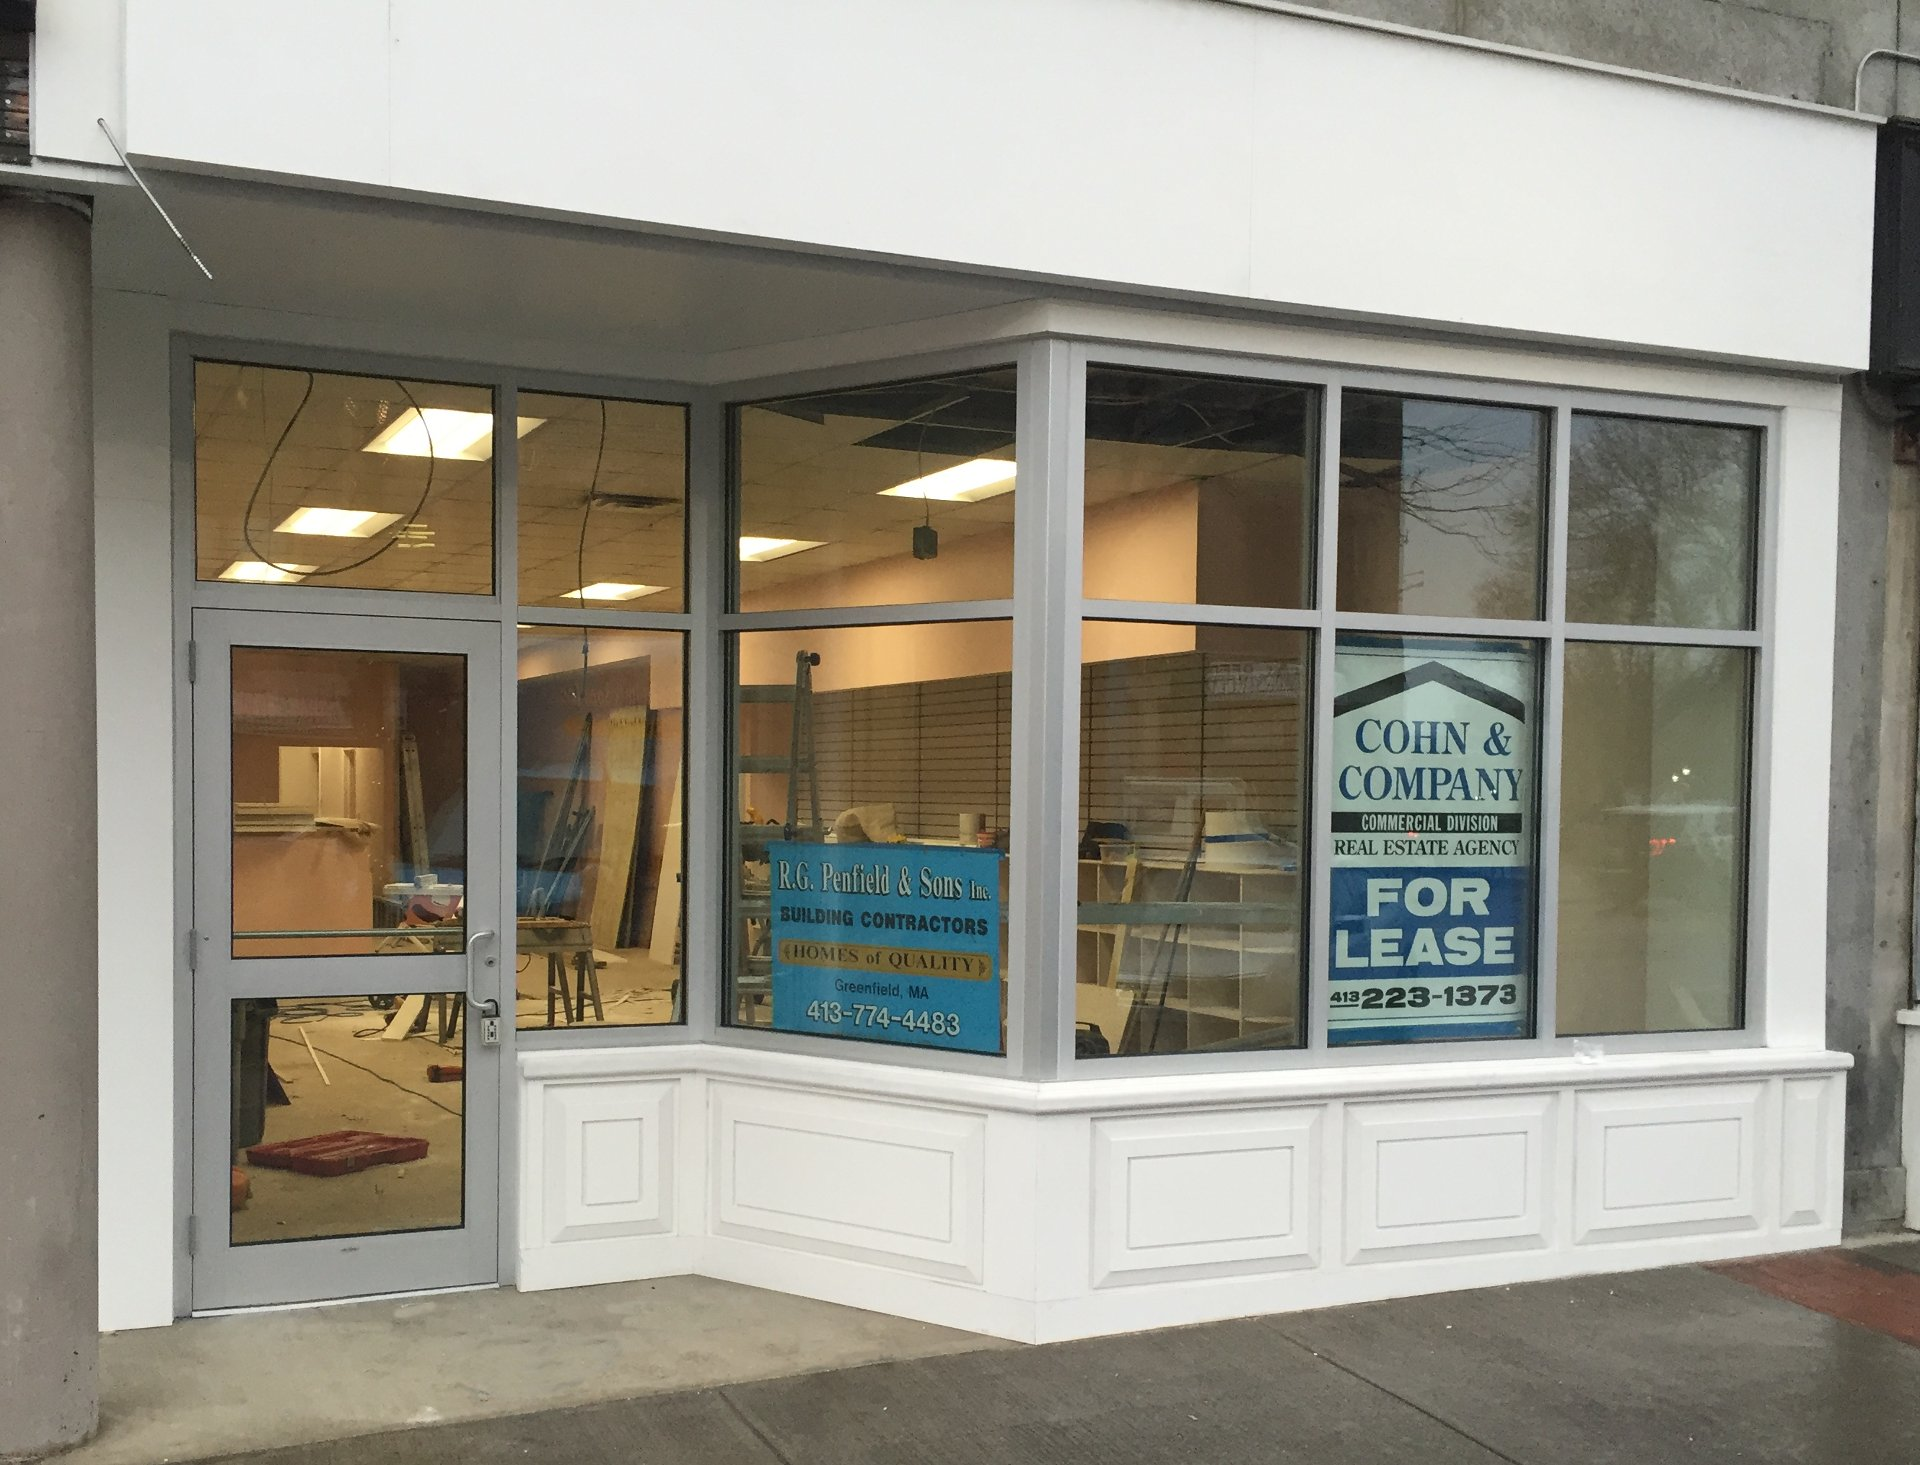 282 Main Street store front remodel.